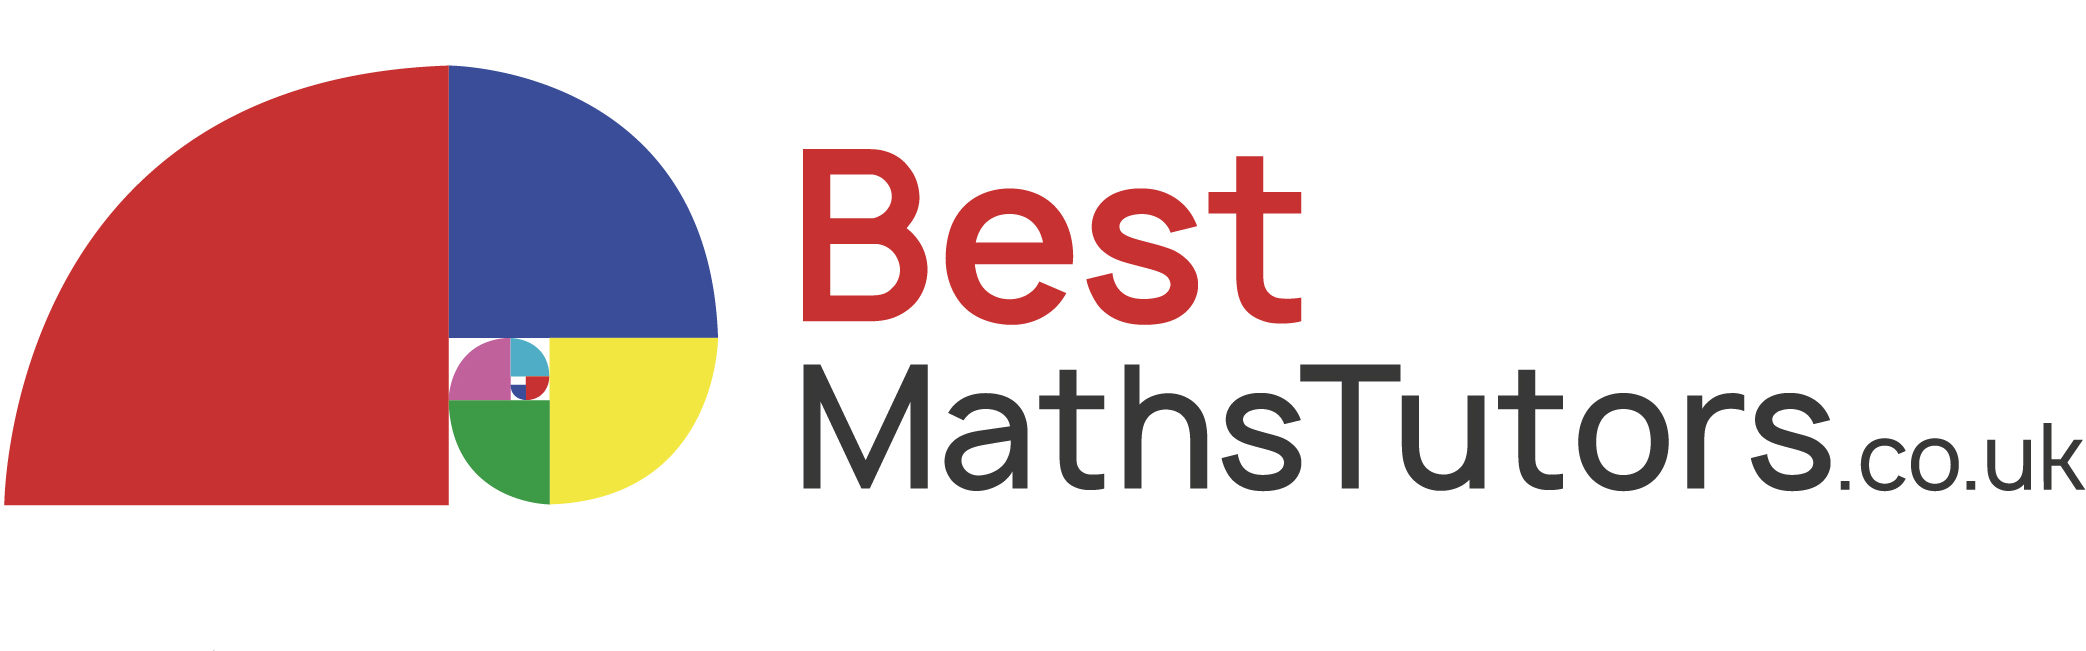 Best Maths Tutors